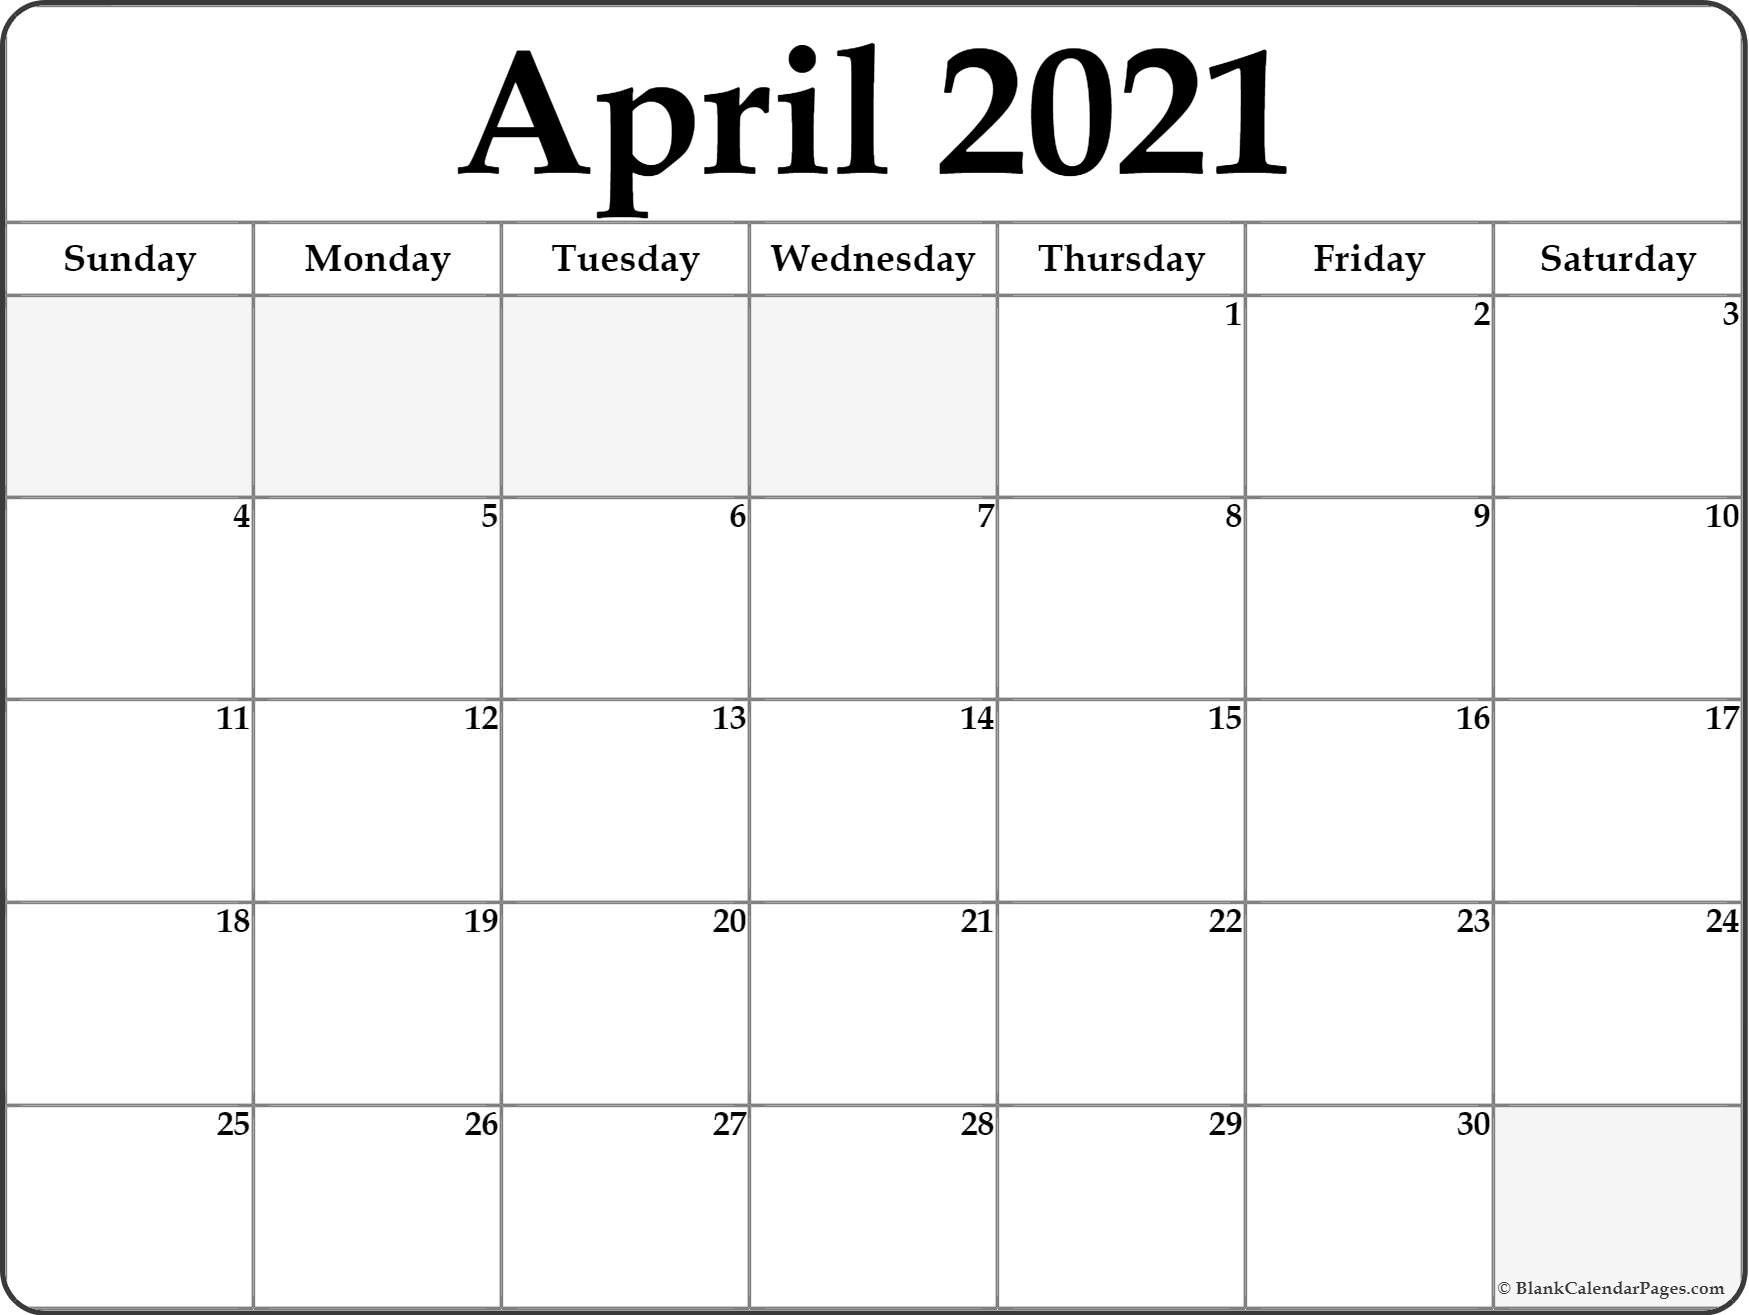 Weekly Calendar Template 2021 Blank For Agenda Encouraged To Help Our Weblog Within This P Weekly Calendar Template Blank Calendar Monthly Calendar Template